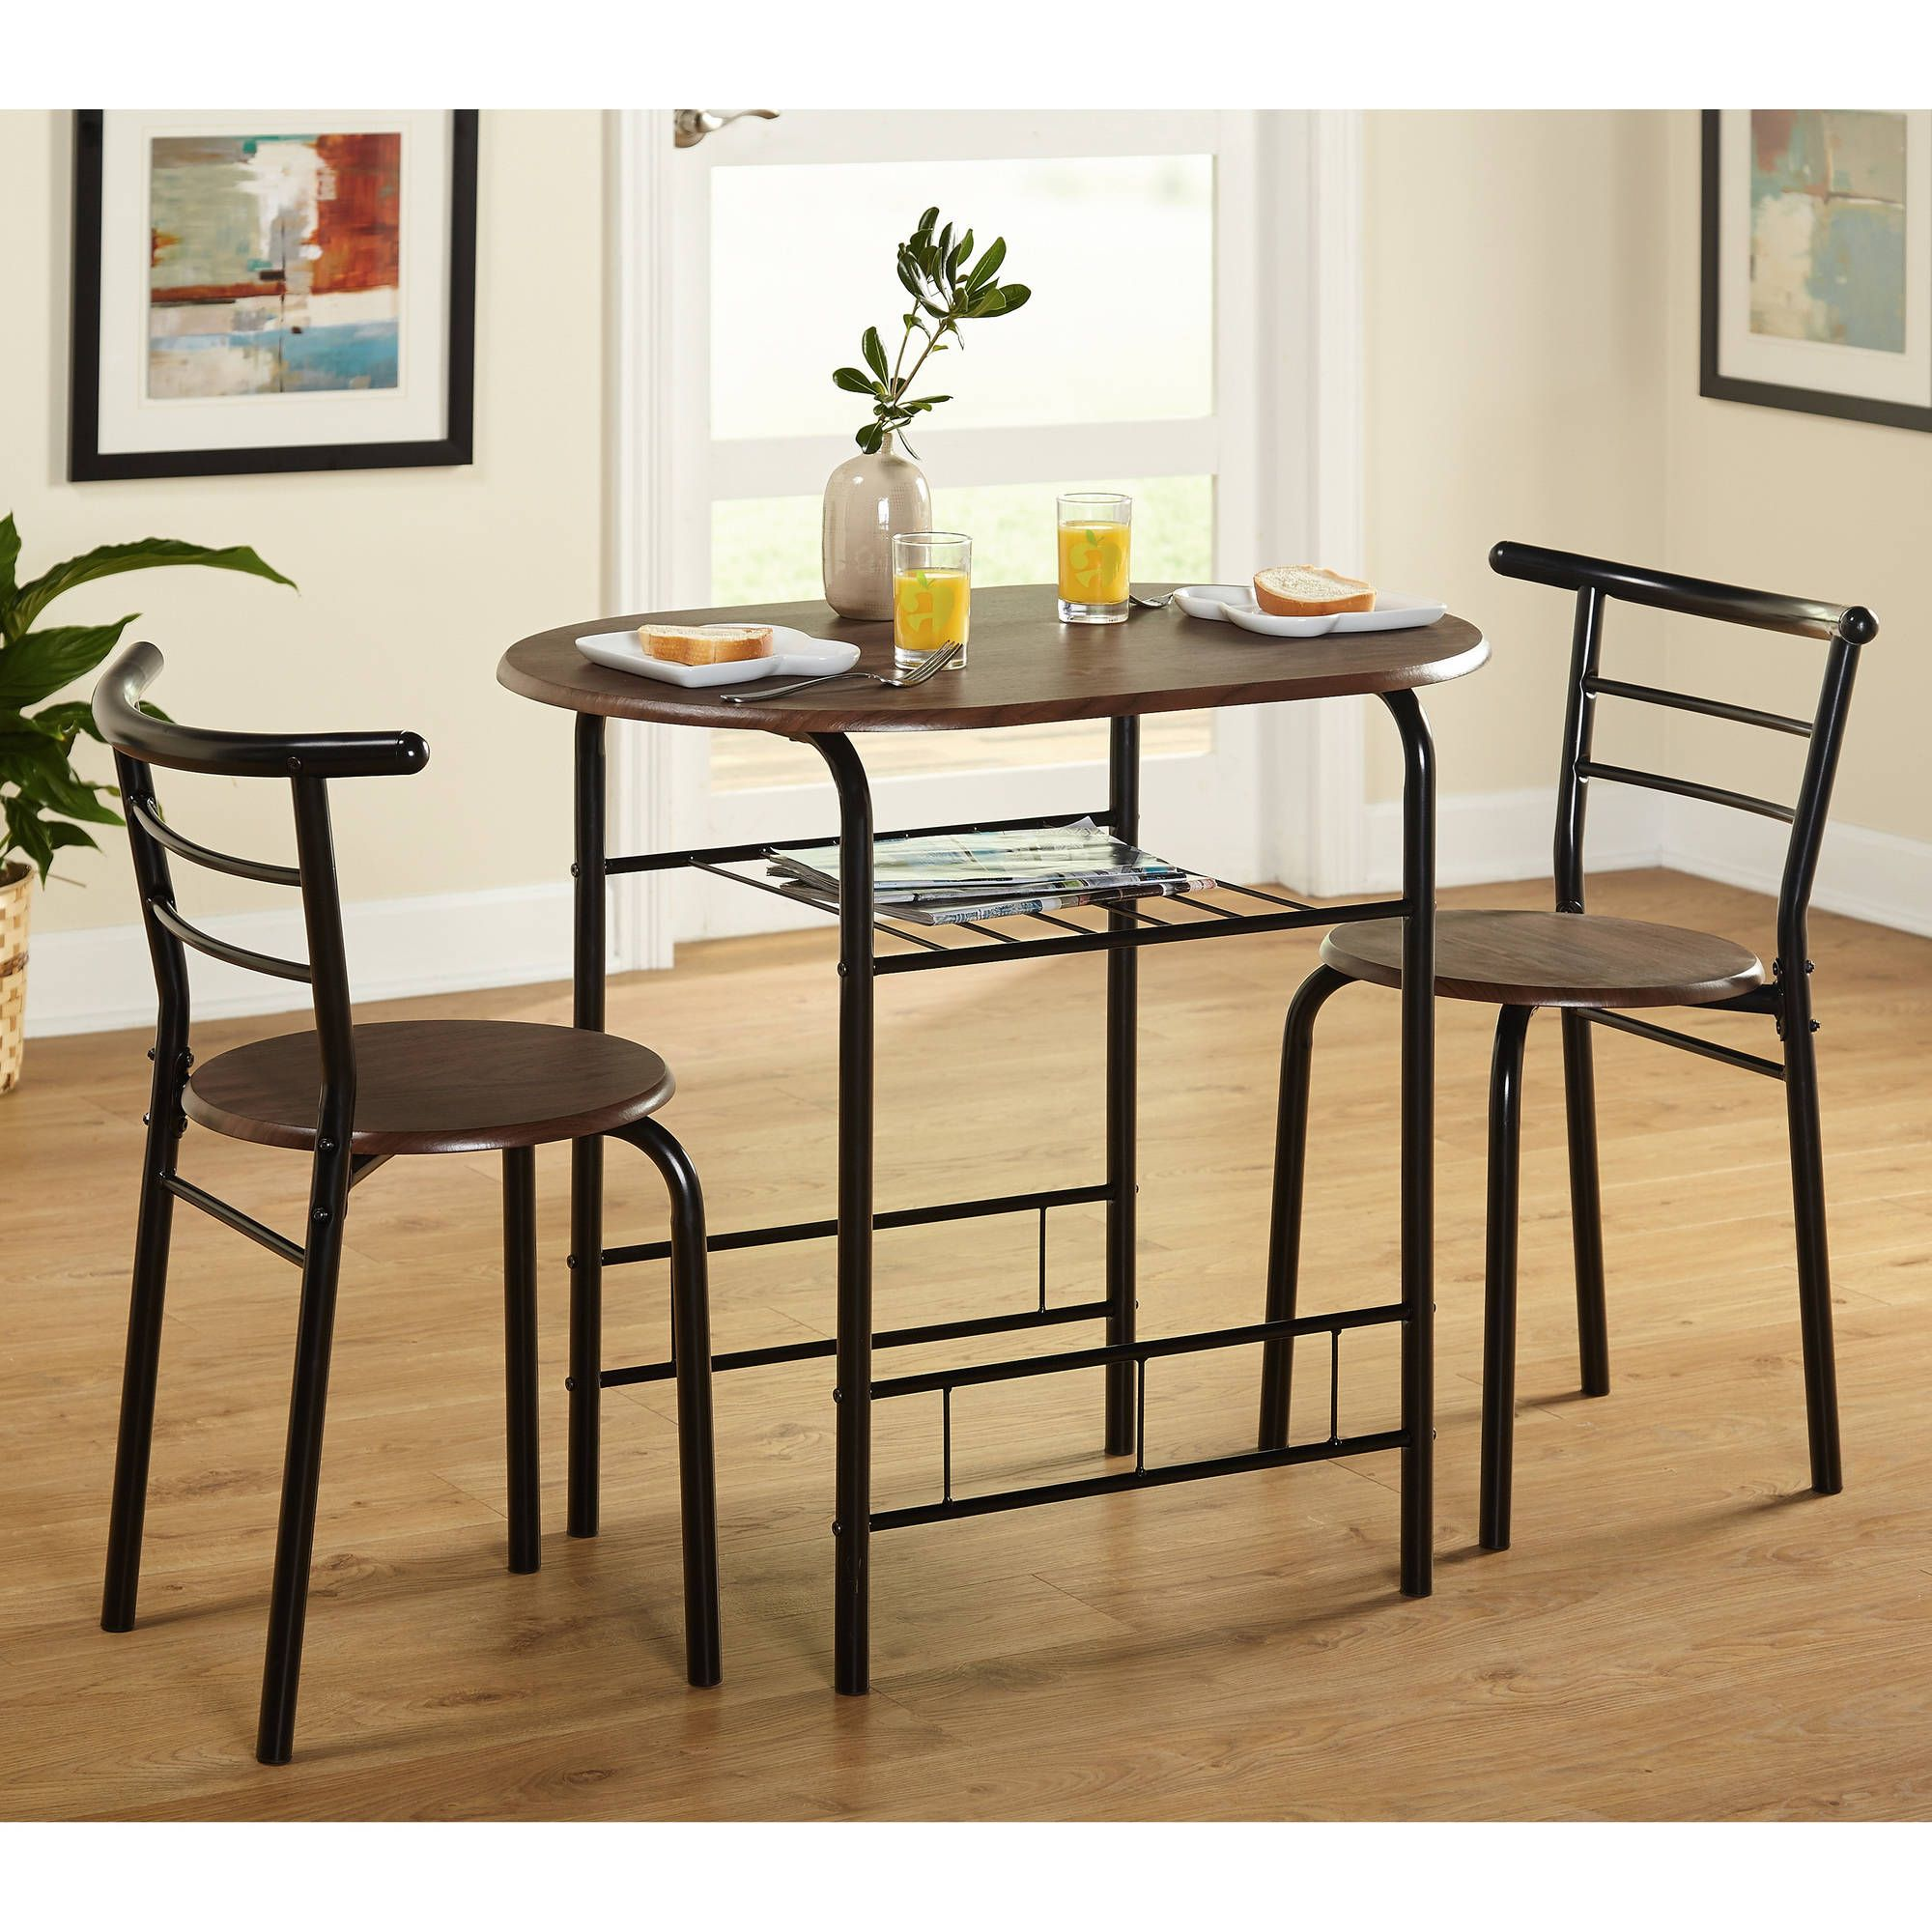 9+ Kitchen Table And Chairs Walmart   MAGZHOUSE